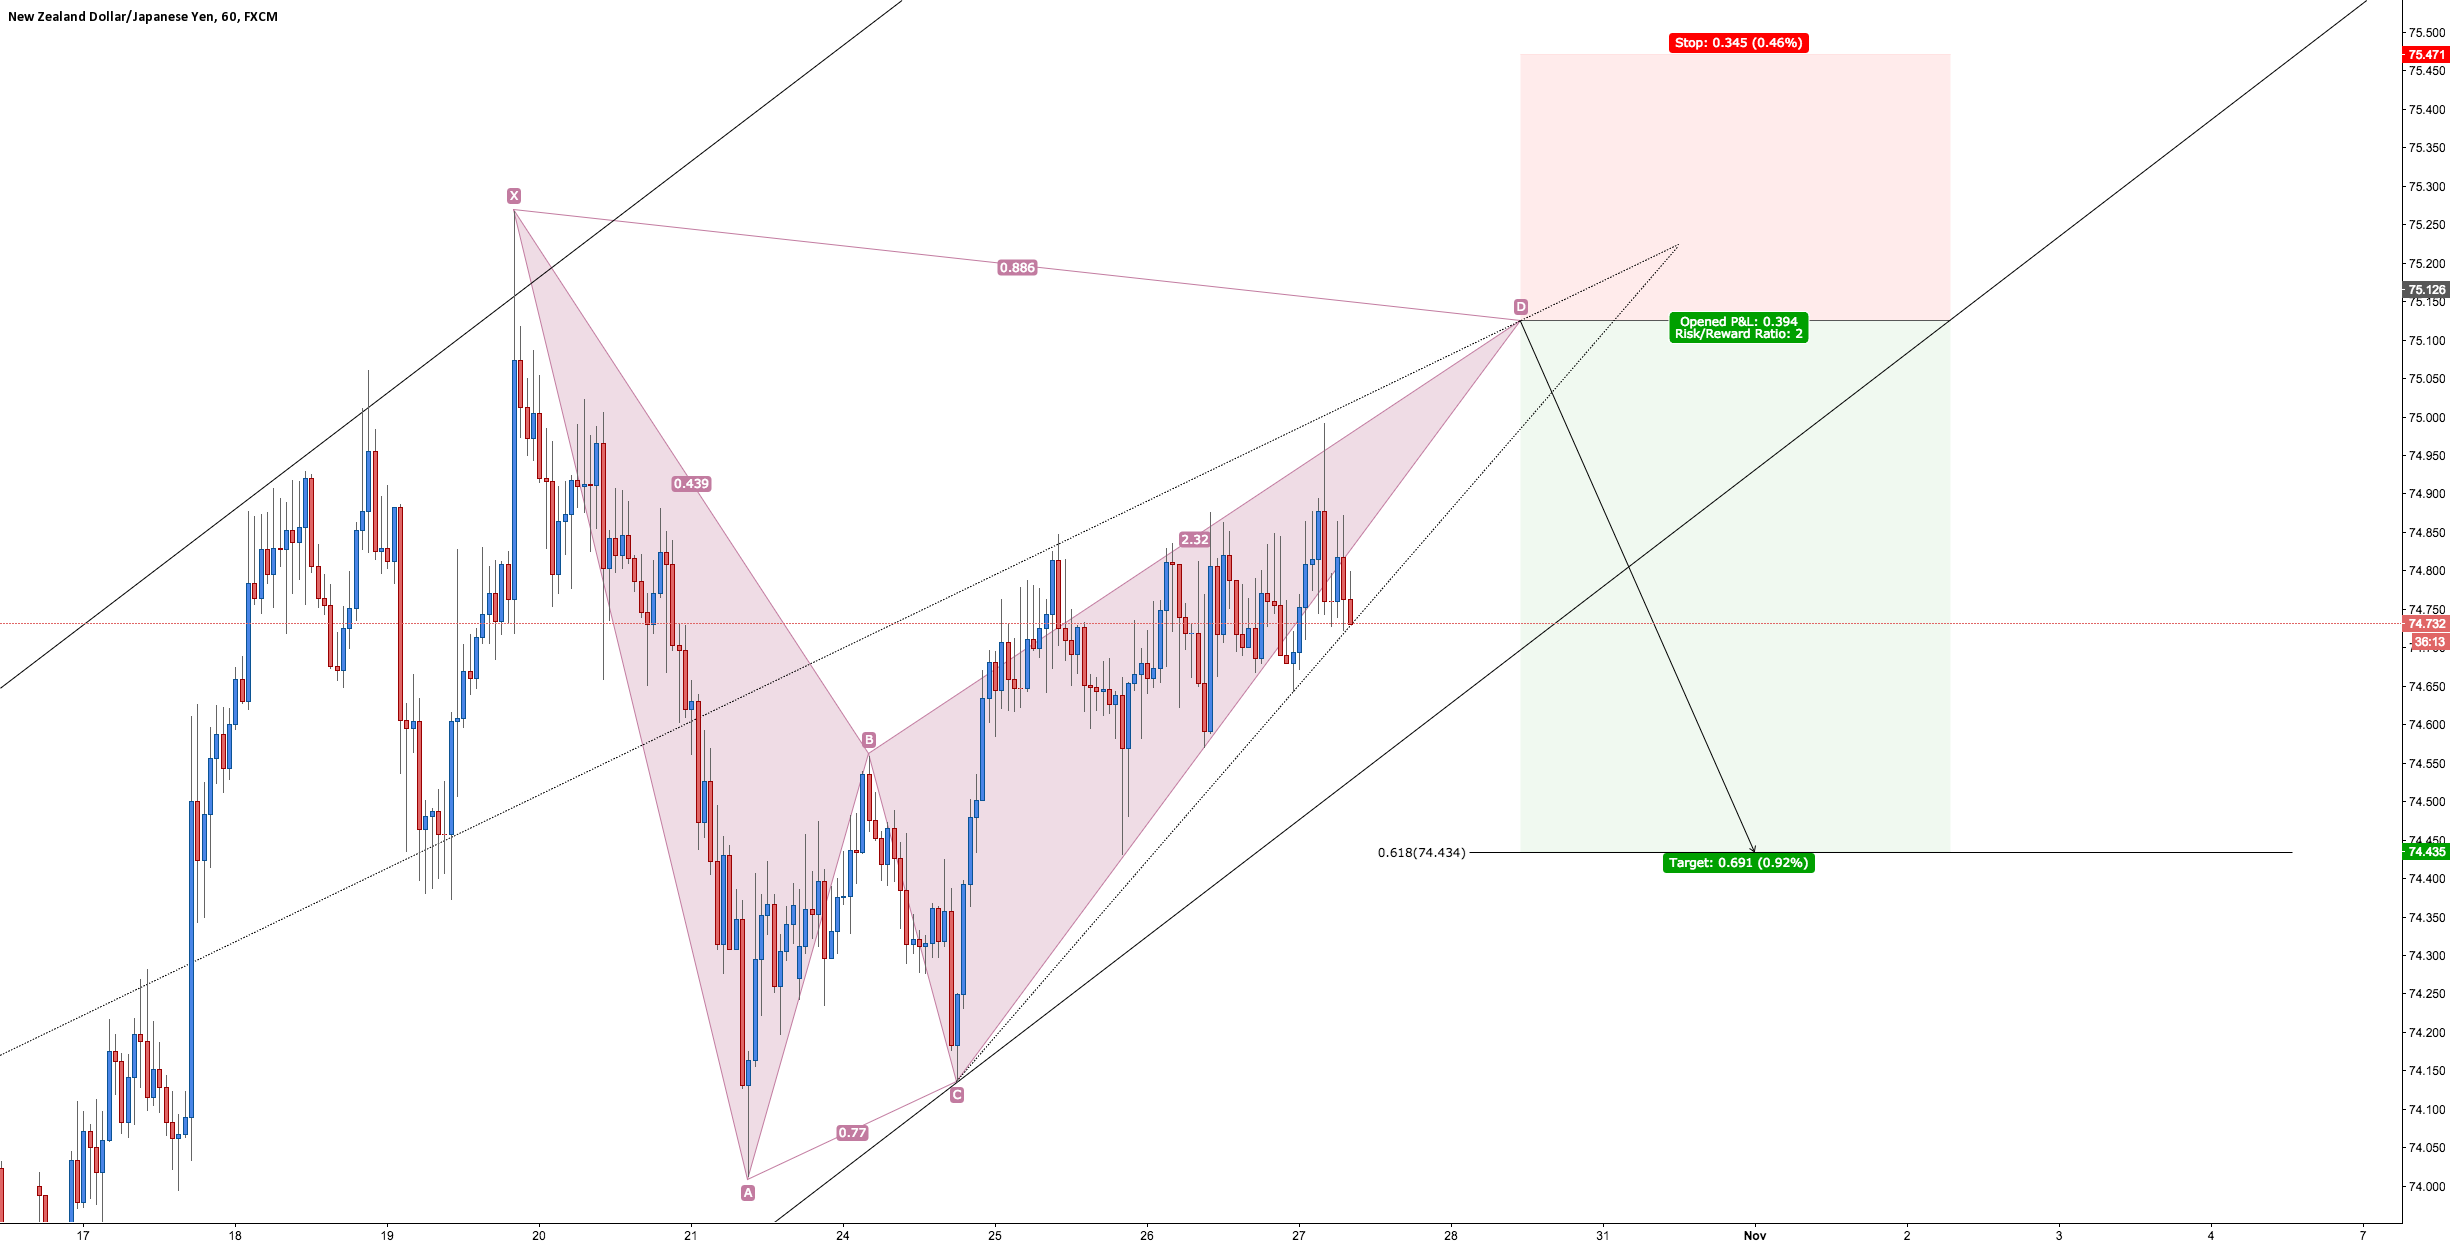 NZD/JPY - Bearish Bat